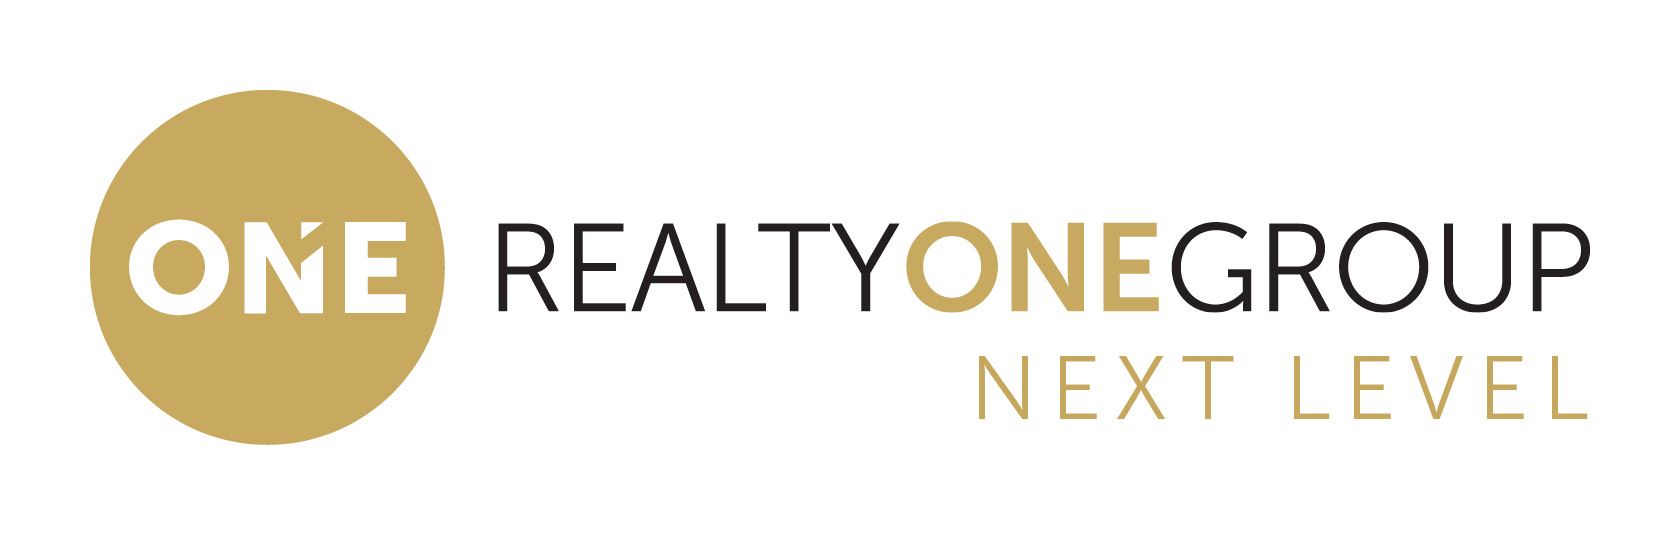 Realty One Group Next Level